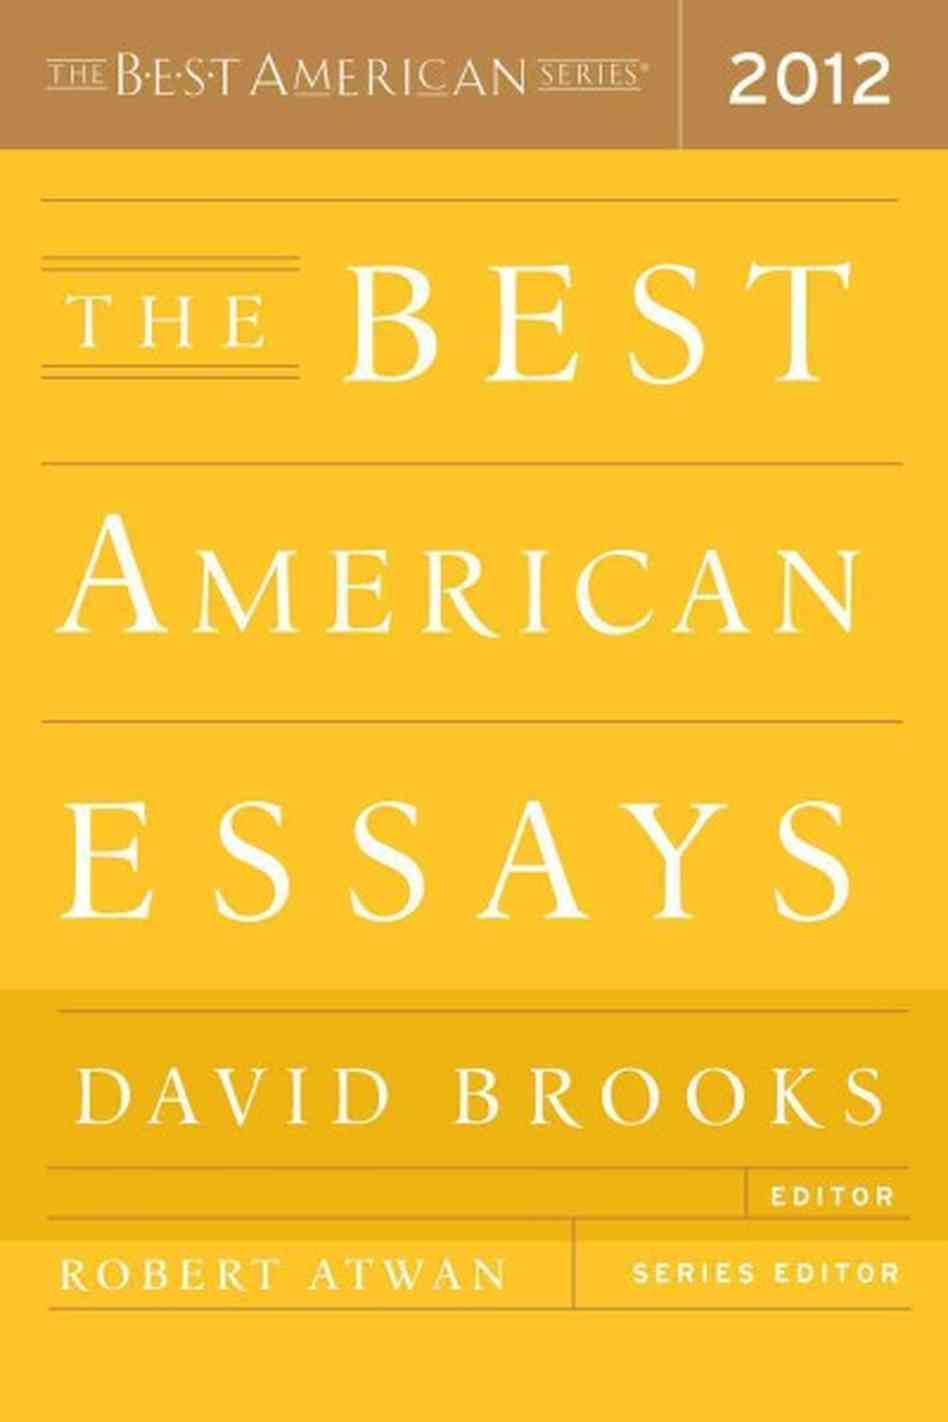 012 The Best American Essays 2012 Essay Wonderful 2013 Pdf Download Of Century Sparknotes 2017 Full